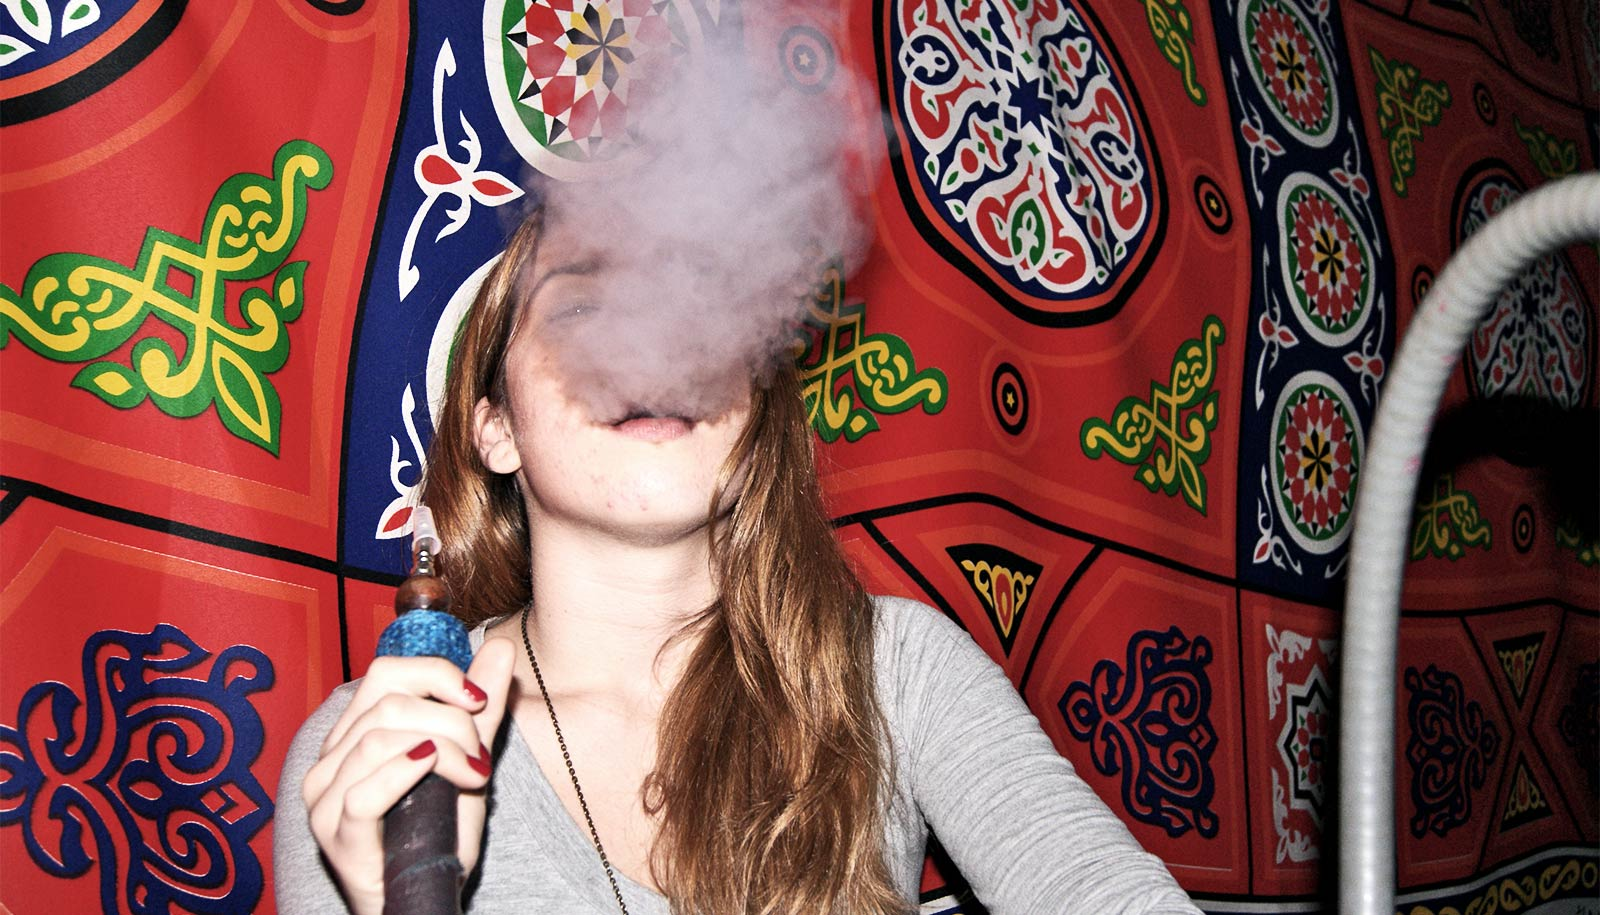 Hookah may be worse for you than cigarettes